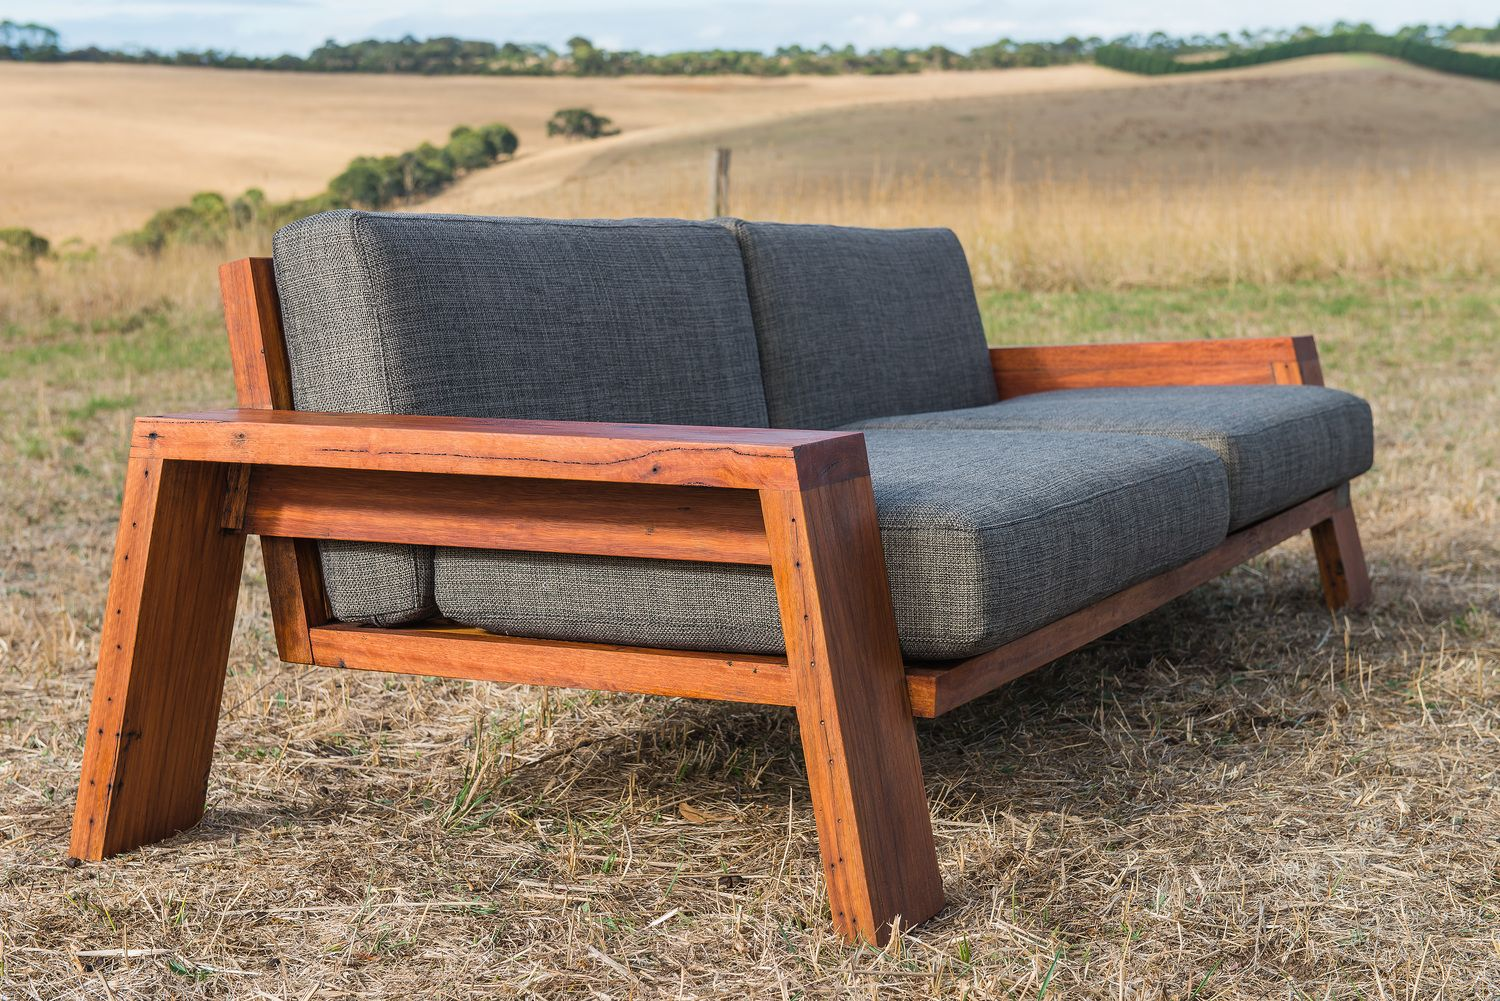 Prime Timber Frame Couch Recycled Timber Furniture Furniture Cjindustries Chair Design For Home Cjindustriesco